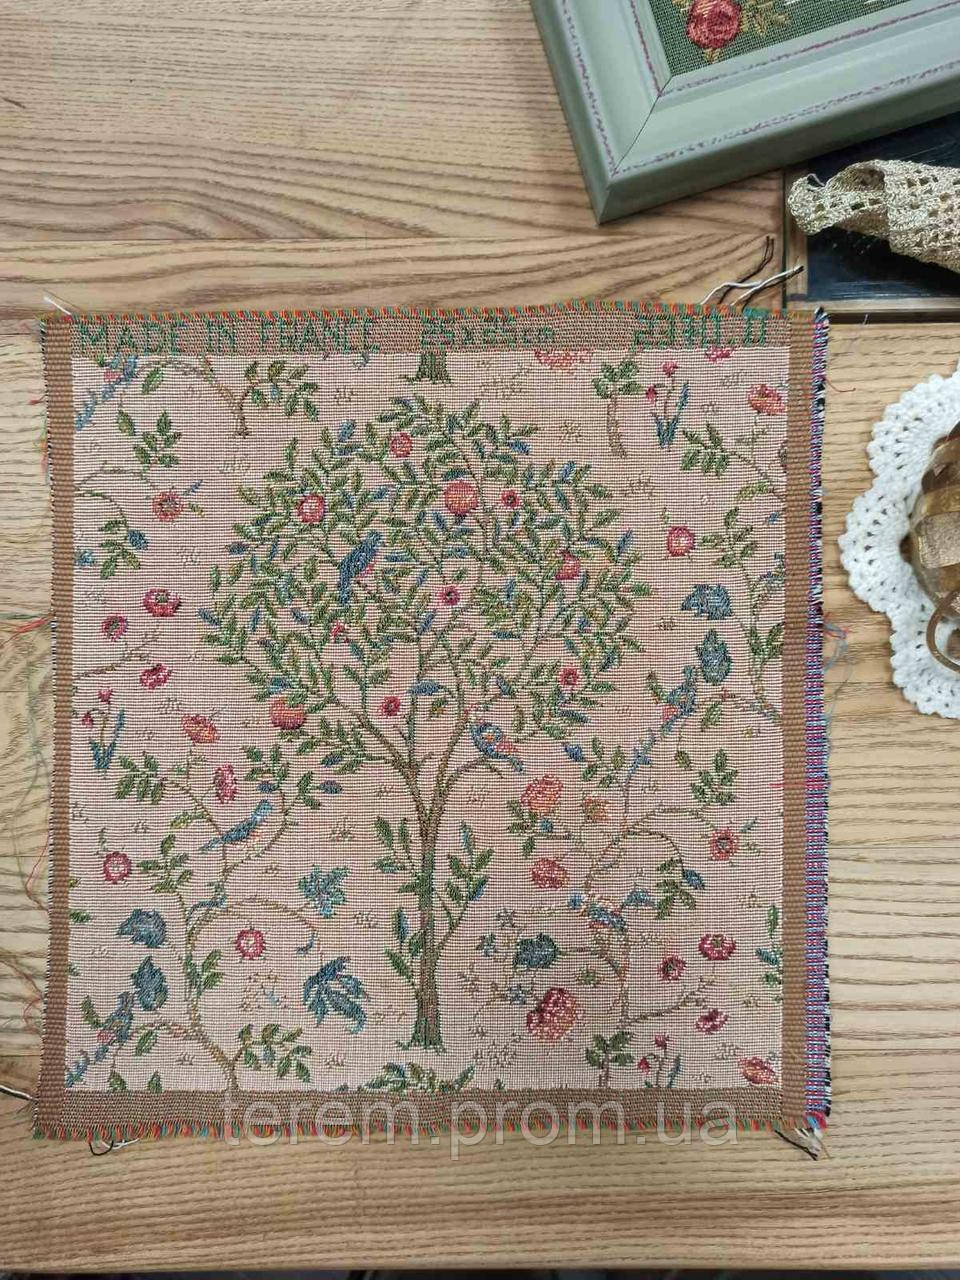 Гобеленовая картина Art de Lys Kelmscott Tree  25x25  без подкладки